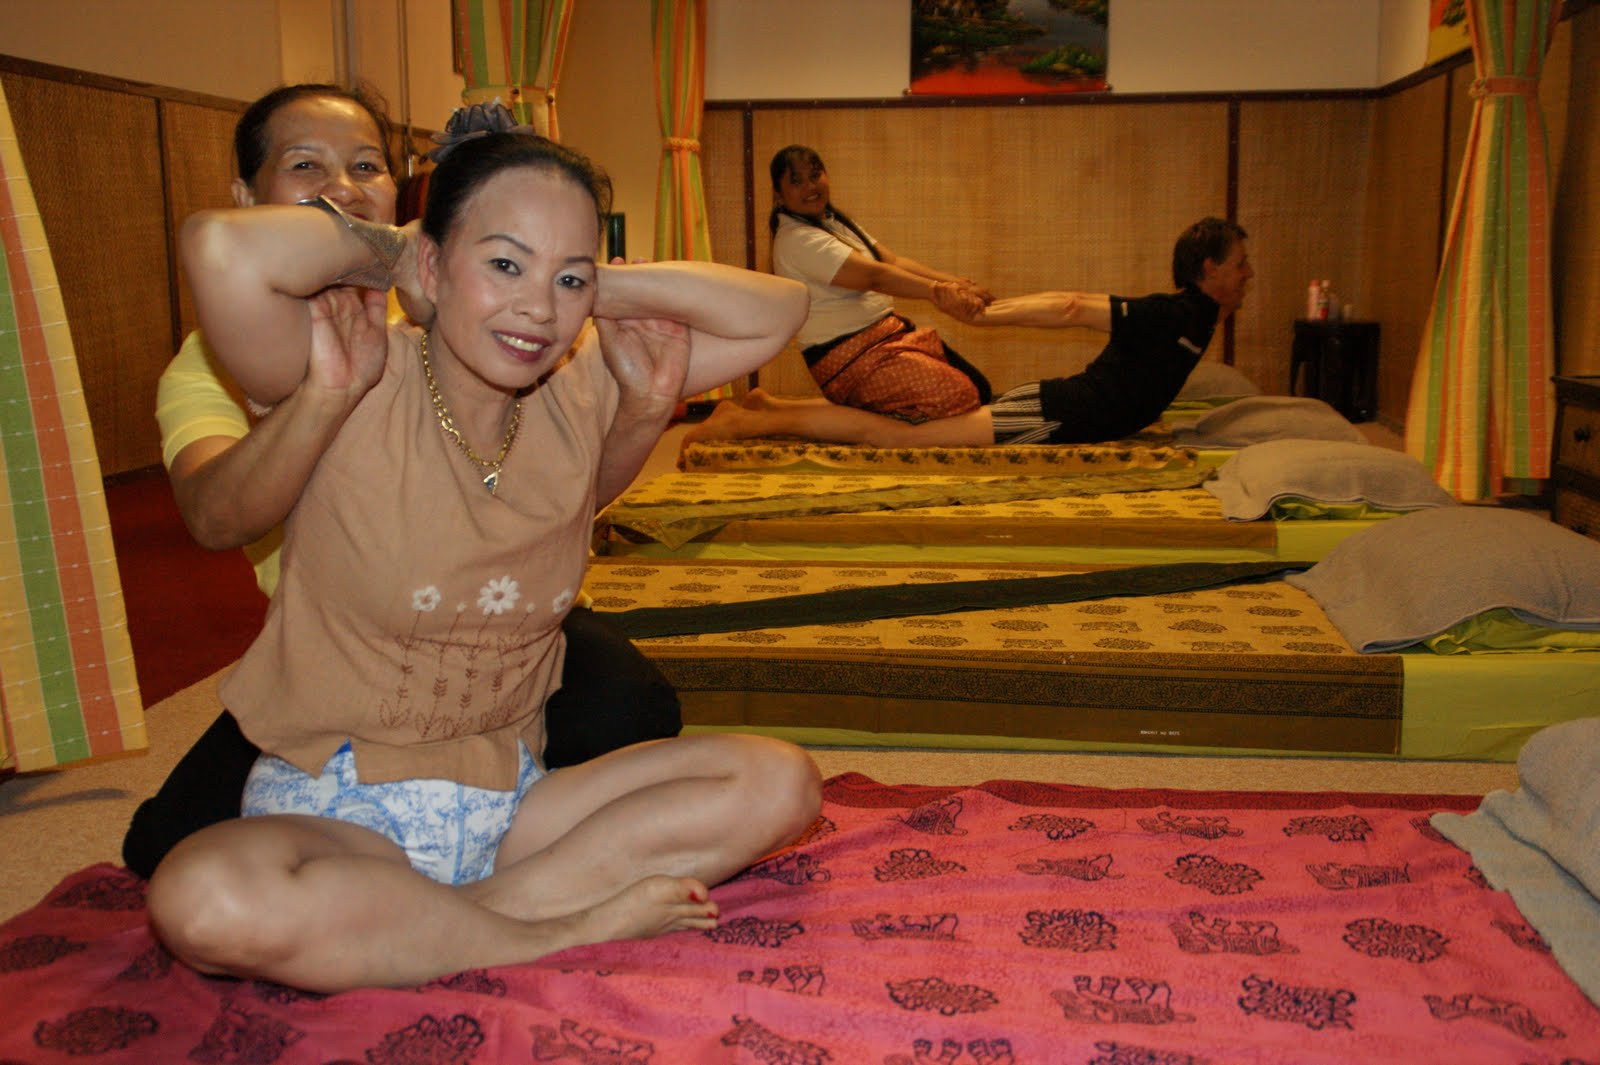 gratis porr gay topless thai massage